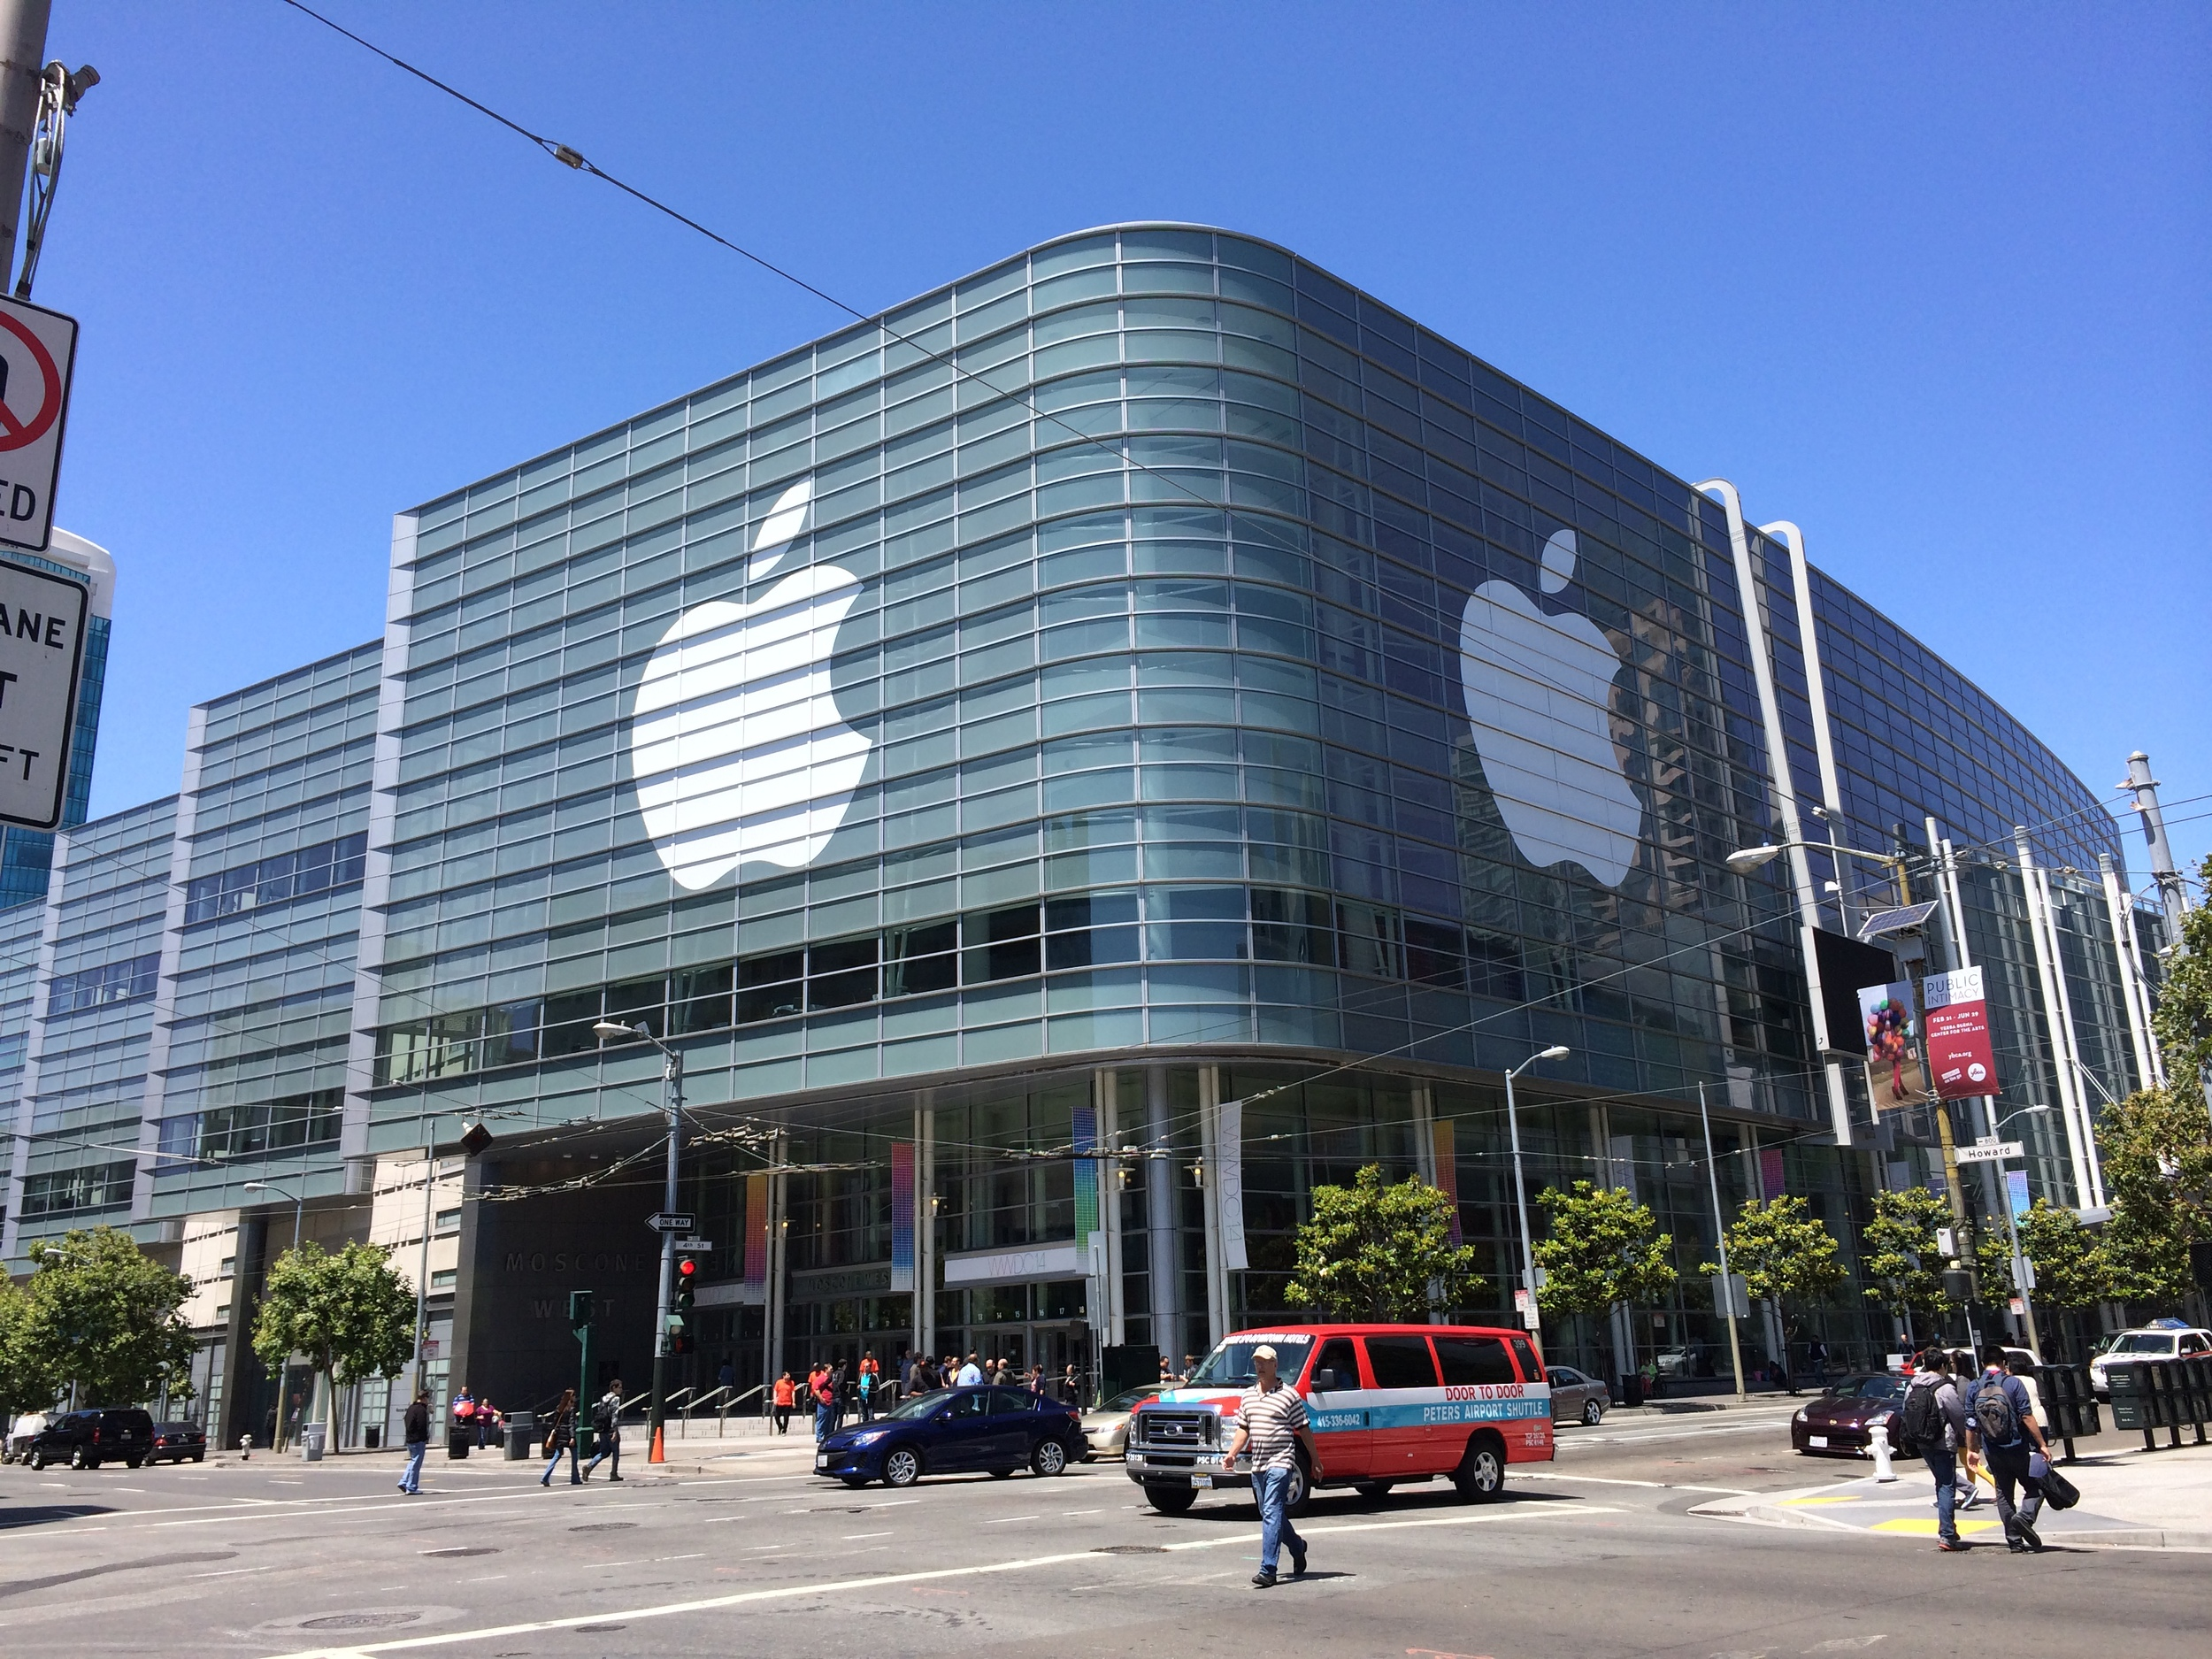 Moscone Center in San Francisco